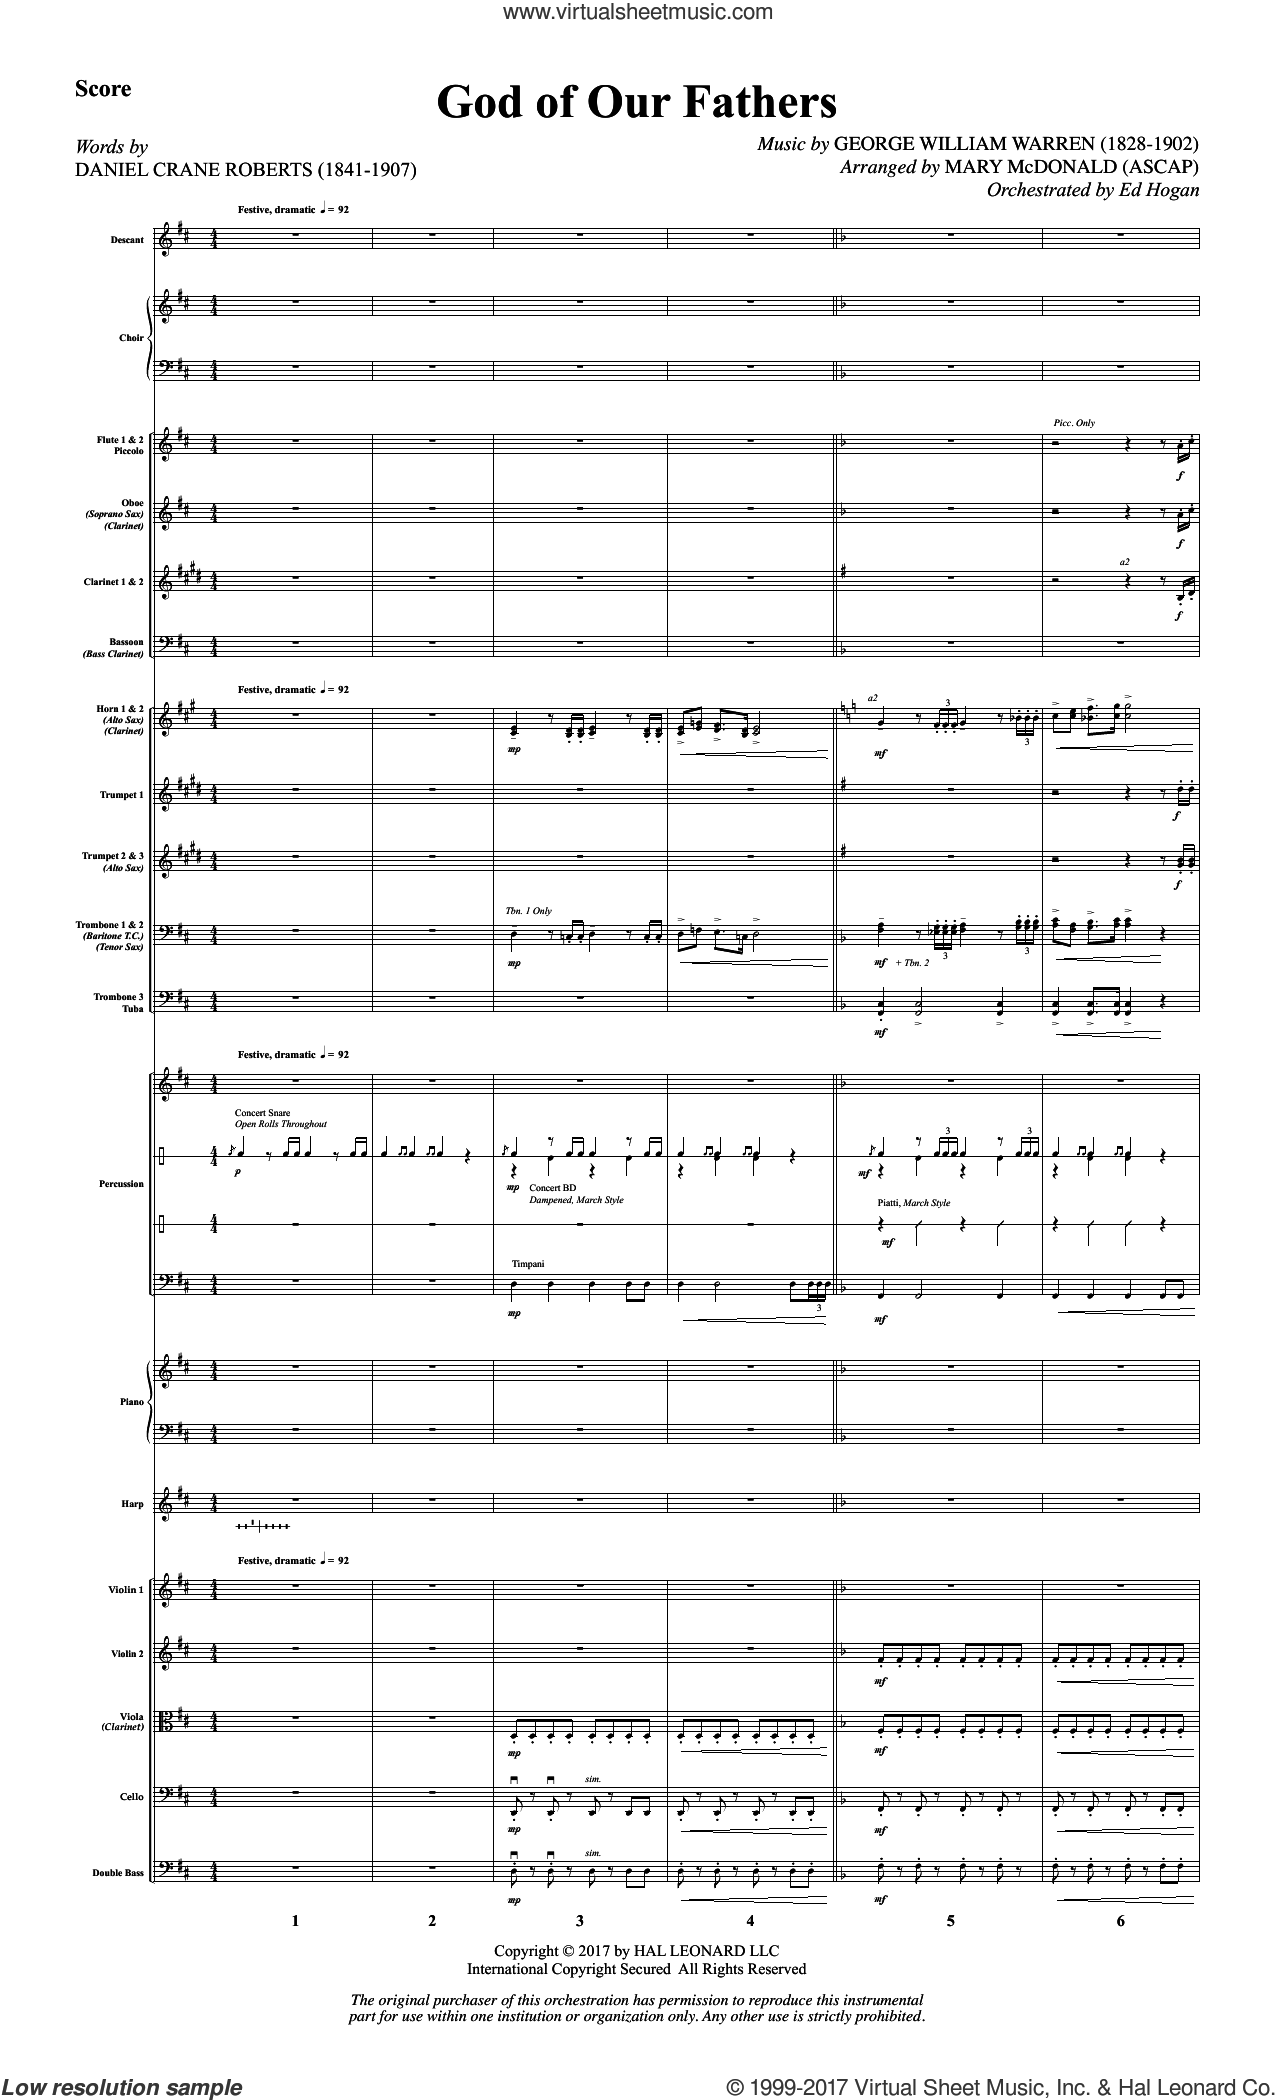 God of Our Fathers (COMPLETE) sheet music for orchestra/band by Mary McDonald, Daniel Crane Roberts and George William Warren, intermediate skill level